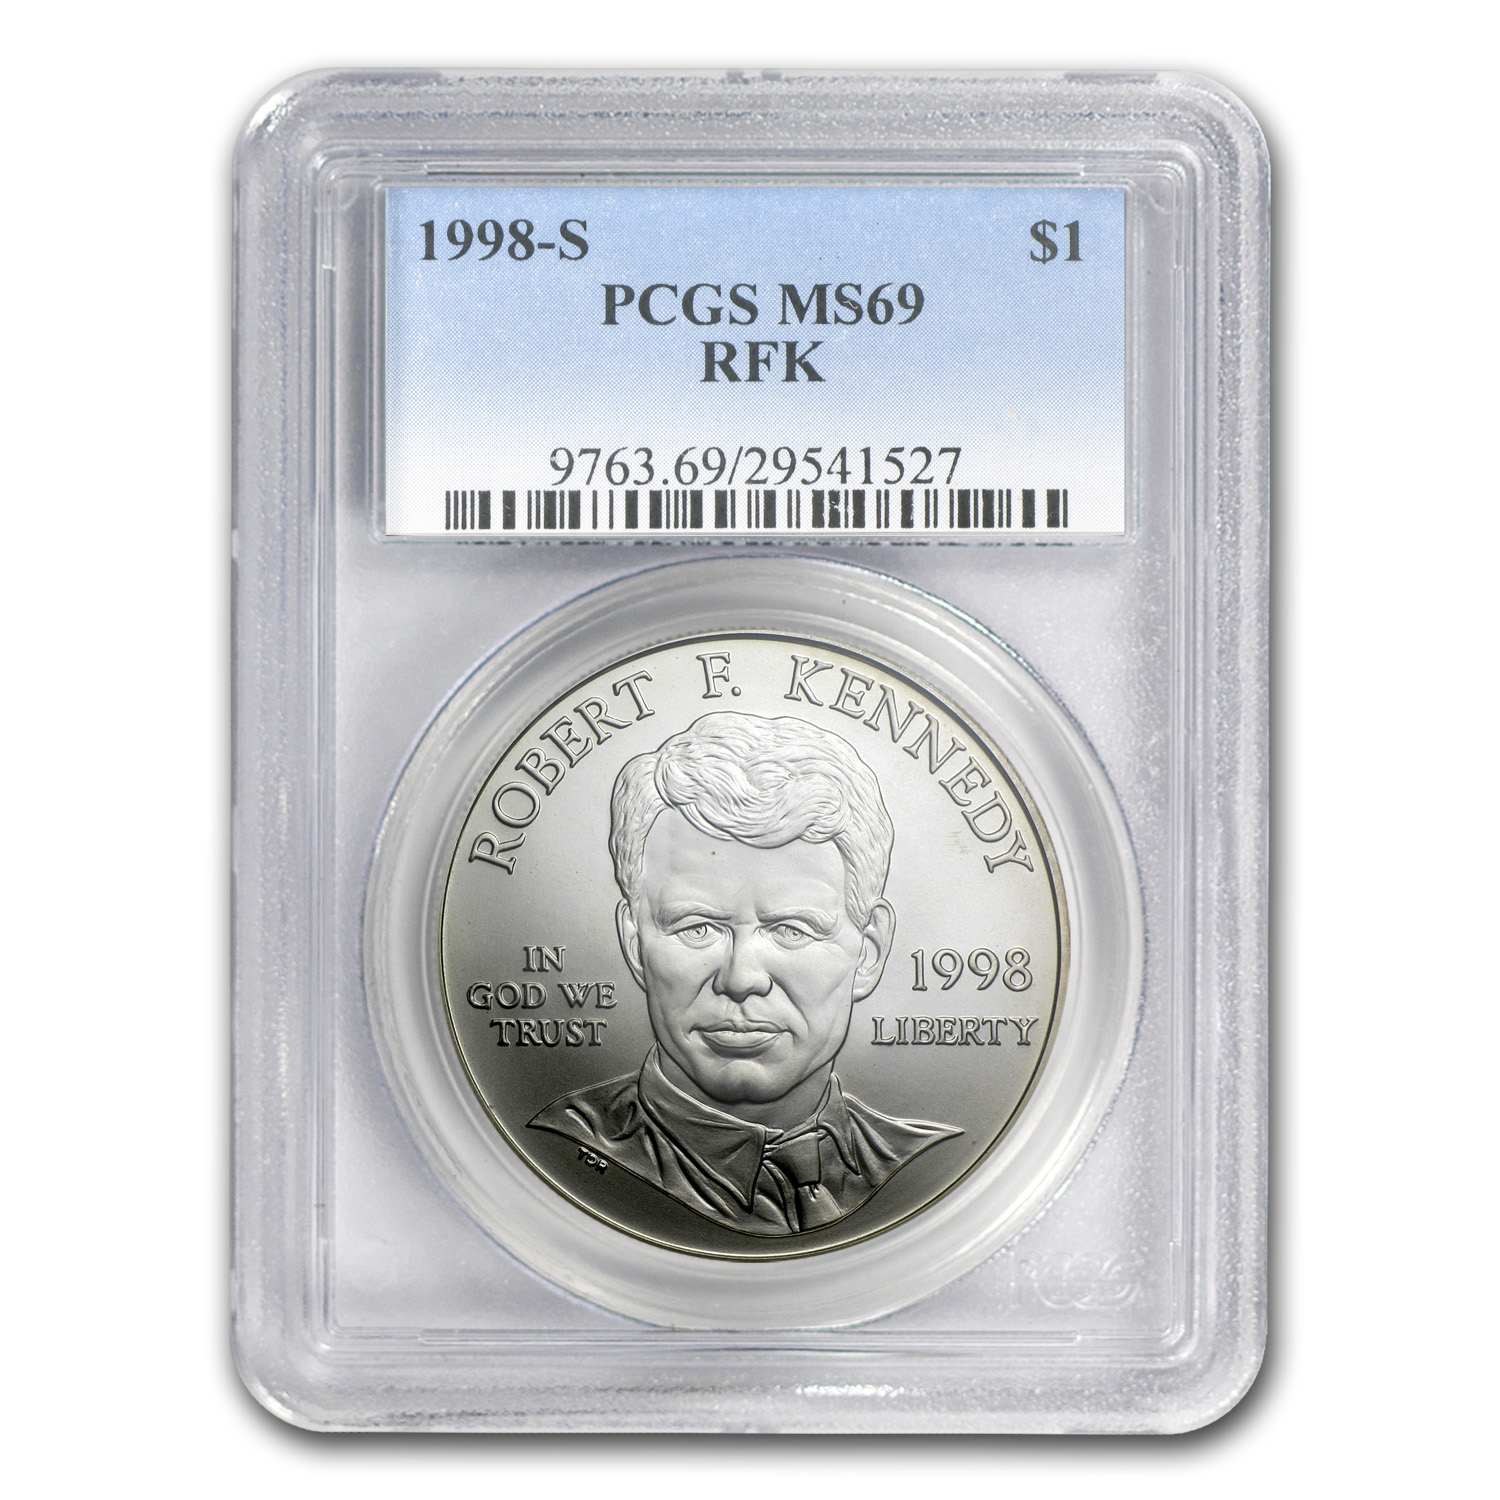 1998-S Robert F. Kennedy $1 Silver Commem MS-69 PCGS